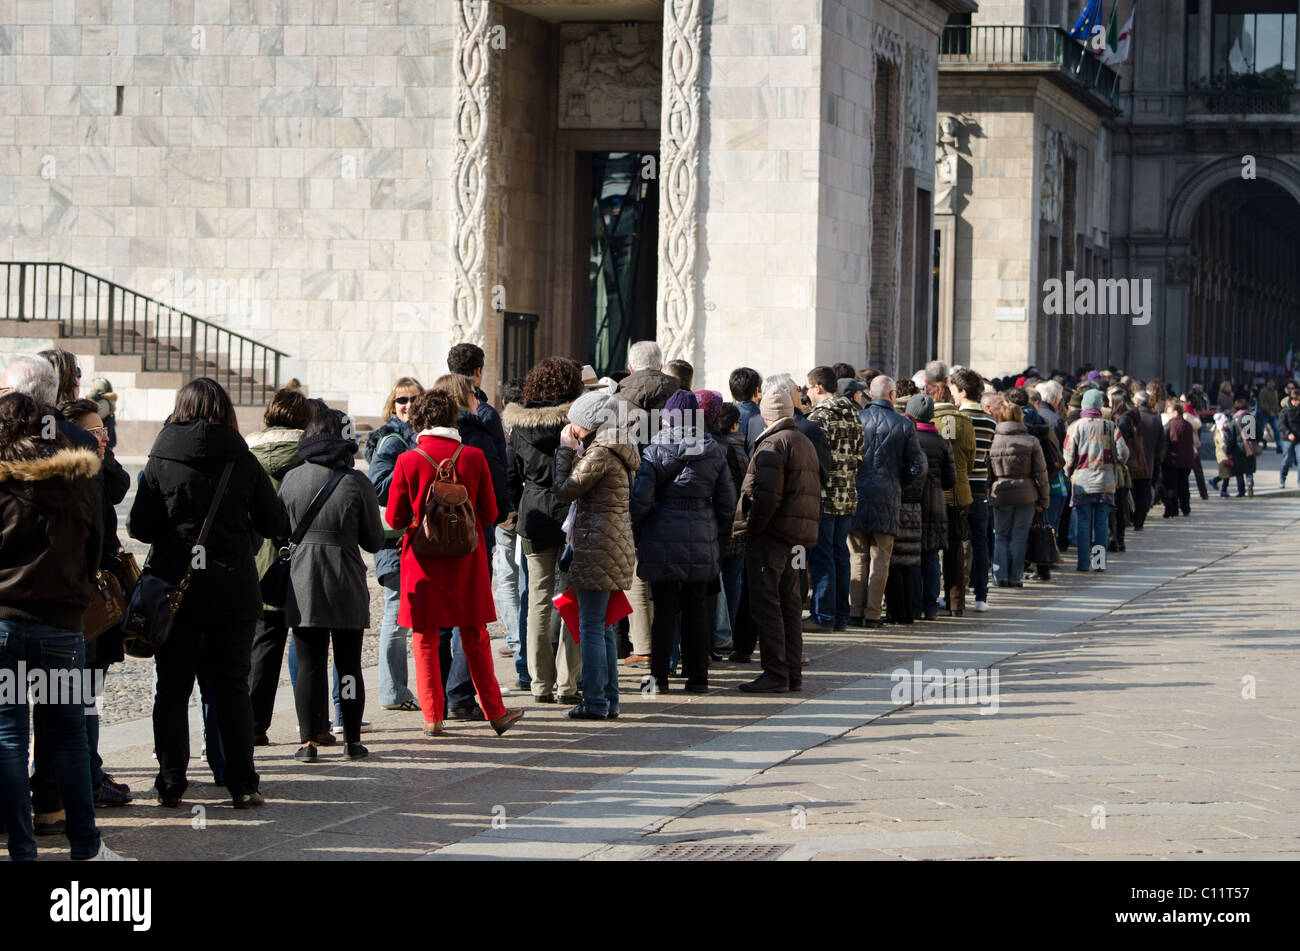 Museo Del 900 Milano.A Long Sunday Queue Outside Of The New Museum Museo Del 900 In